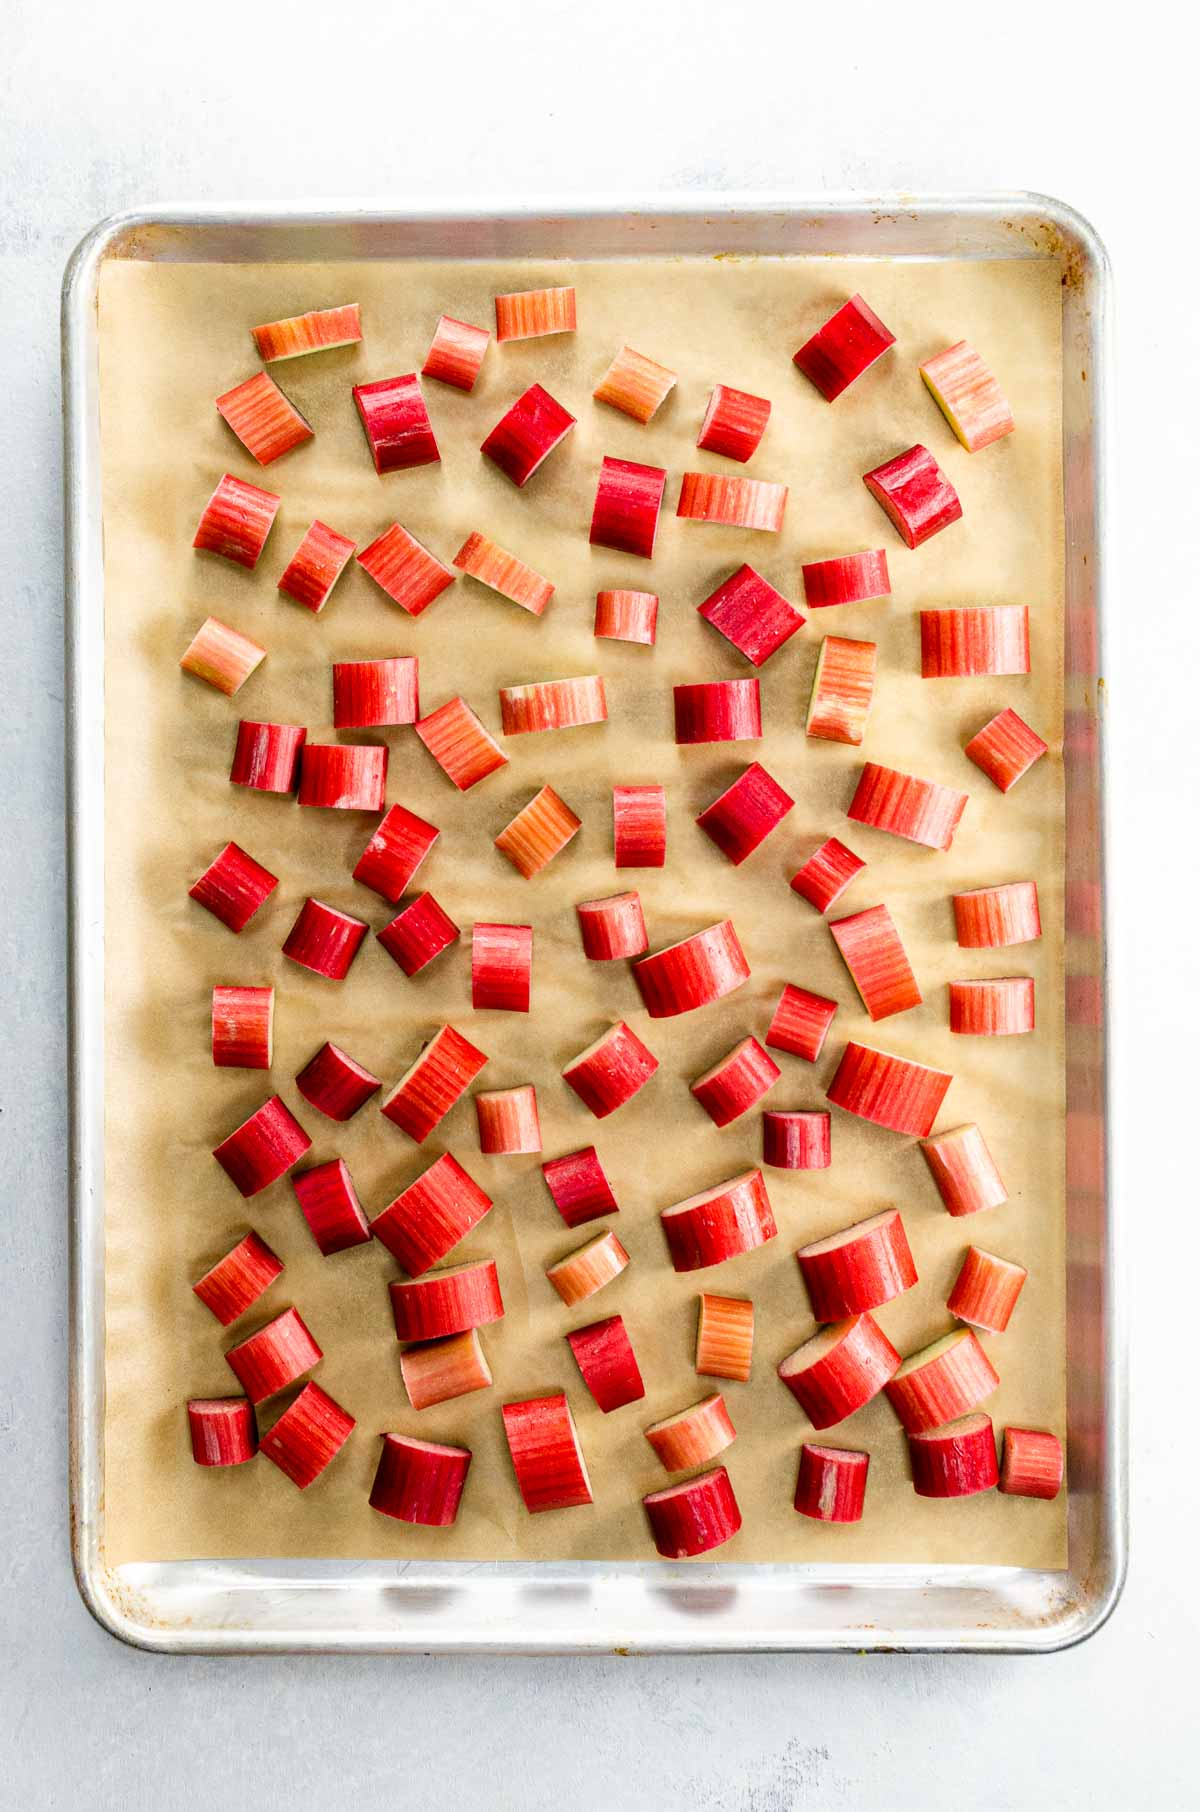 rhubarb slices on a parchment-lined, rimmed baking sheet